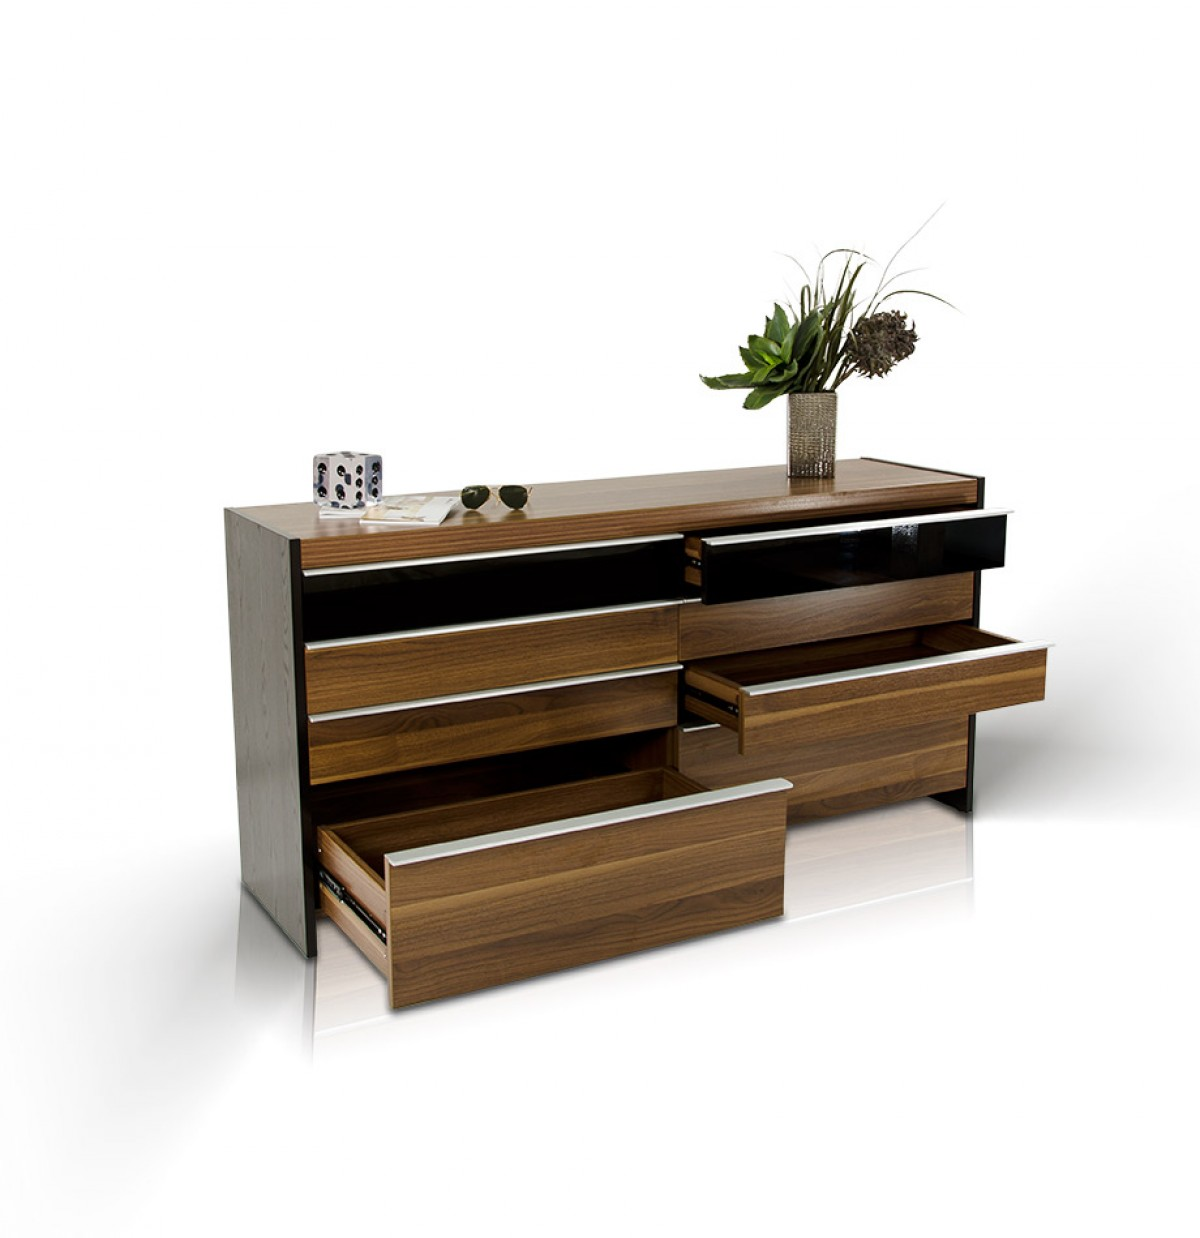 About rondo modern platform bed w nightstands storage and lights